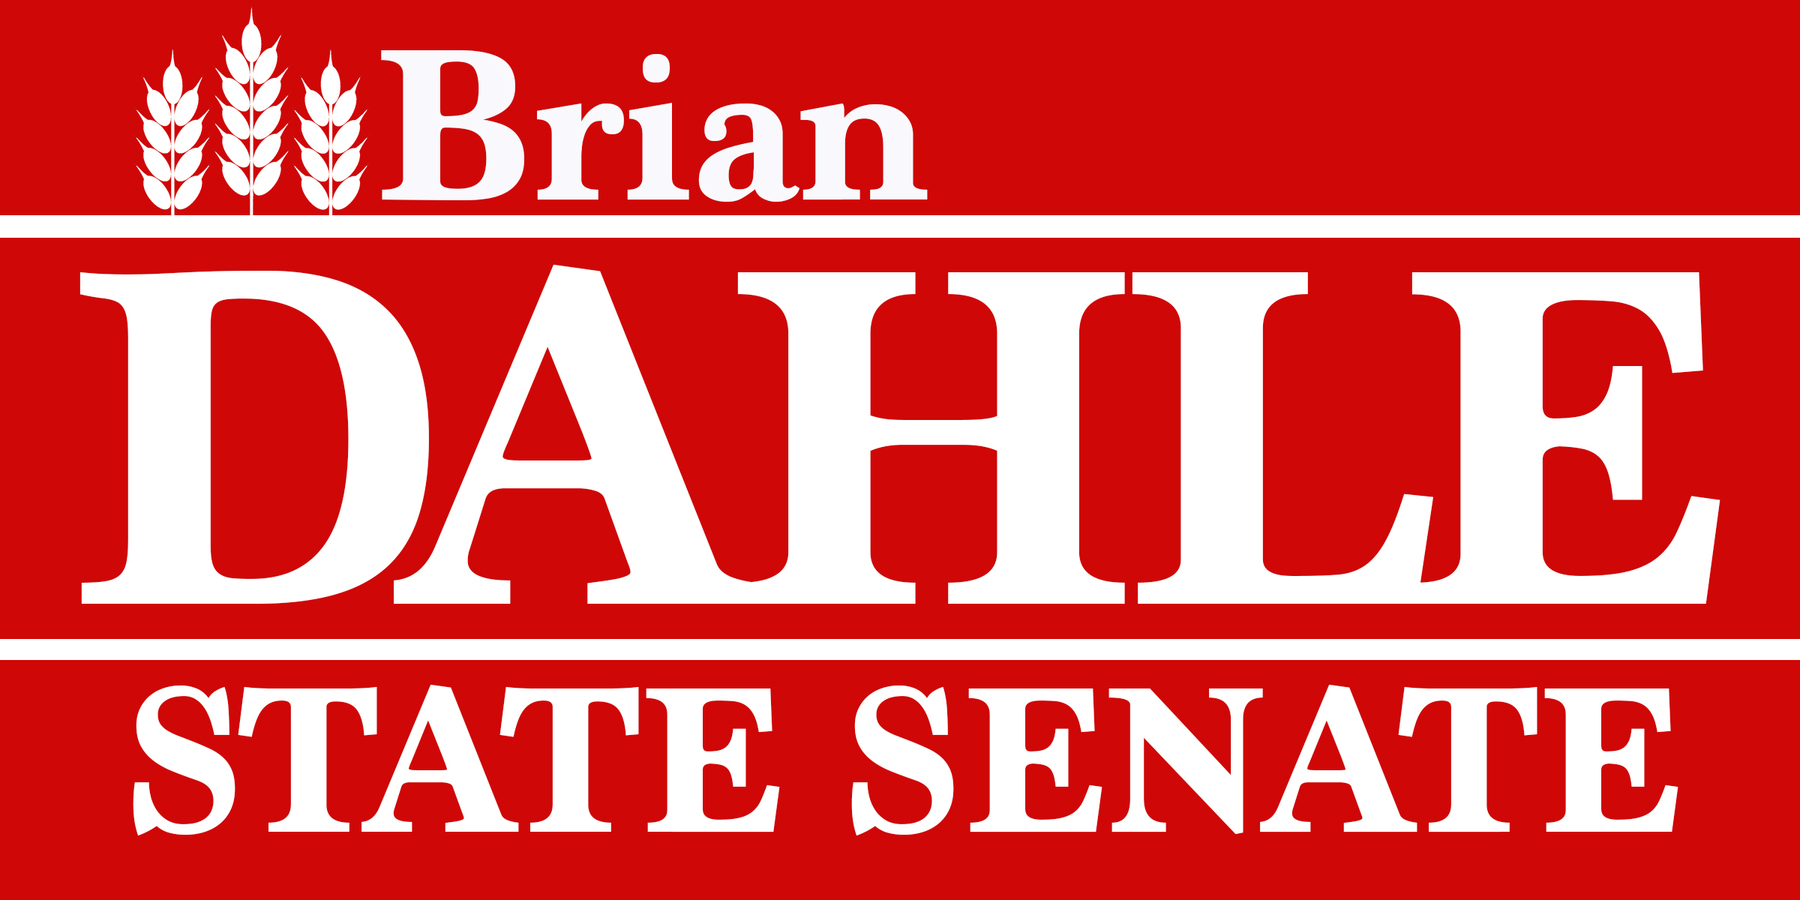 Dahle for Senate: Brian Dahle Website Donation